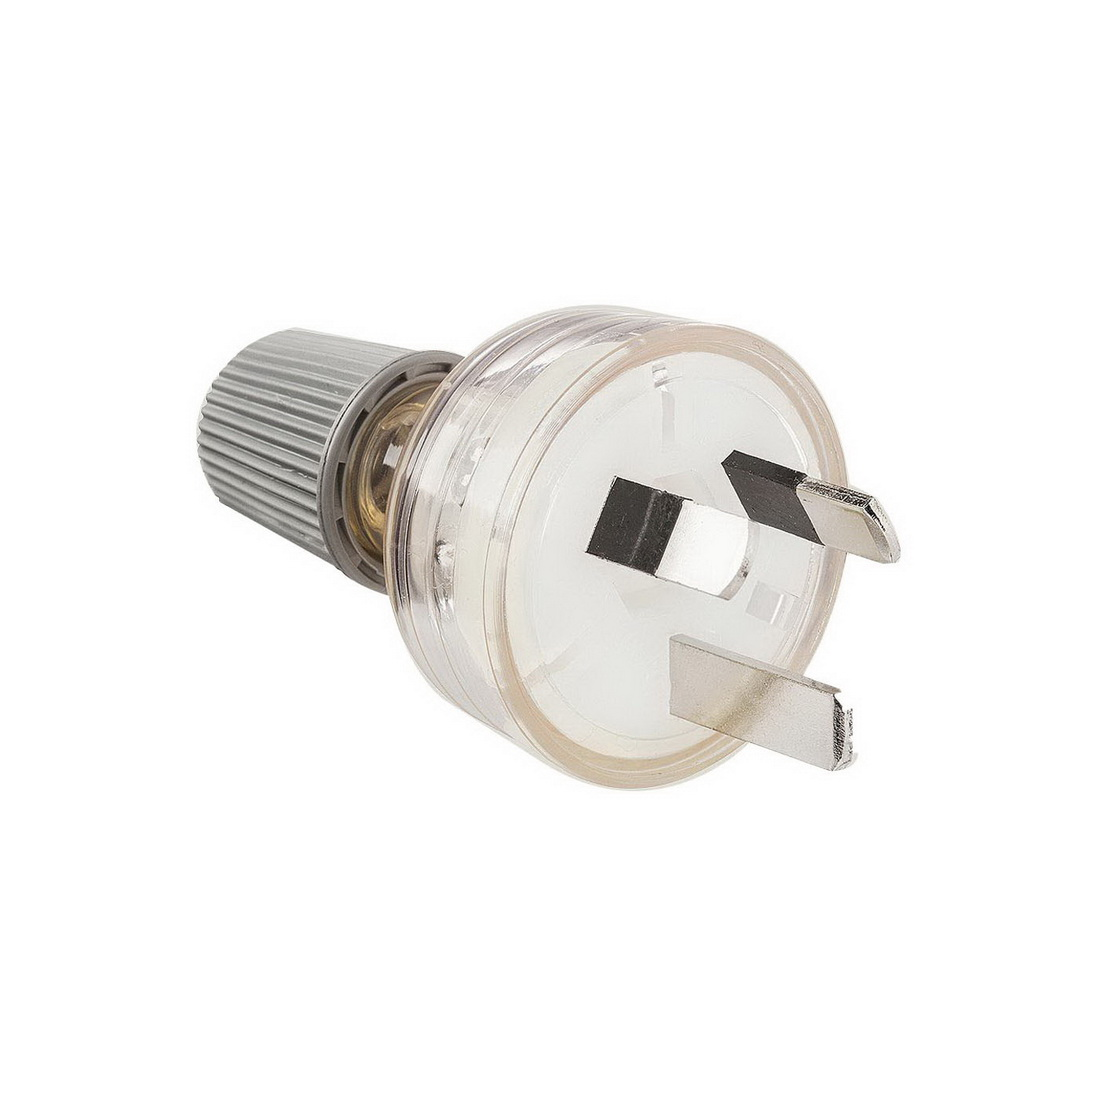 3-Pin Male Electrical Plug Top with Cord Locking Nut Clear